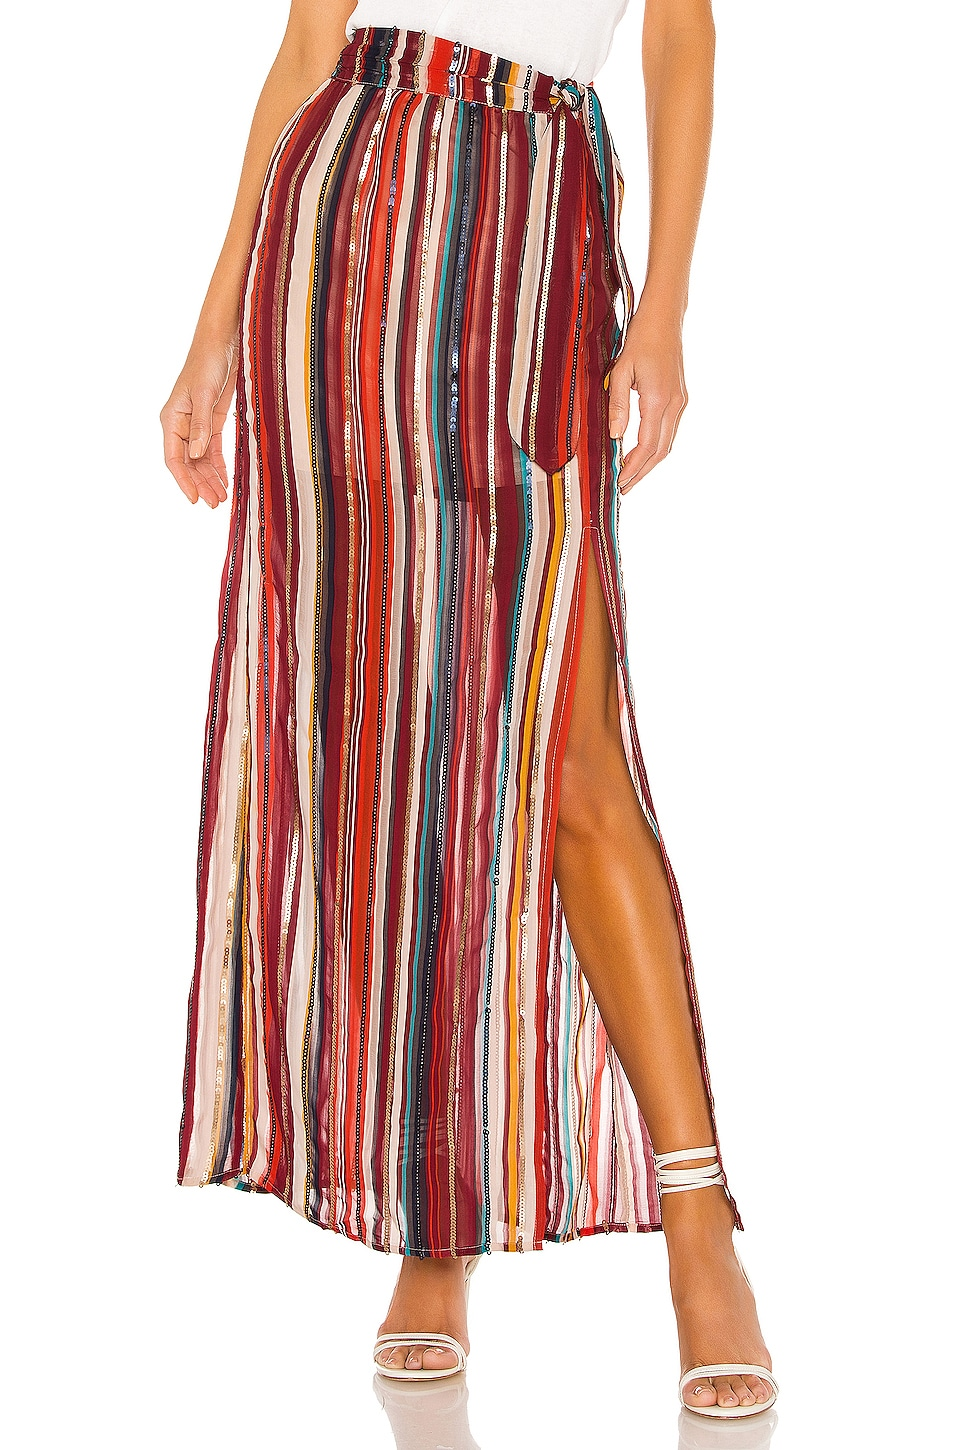 House of Harlow 1960 x REVOLVE Mya Maxi Skirt in Red Multi Stripe